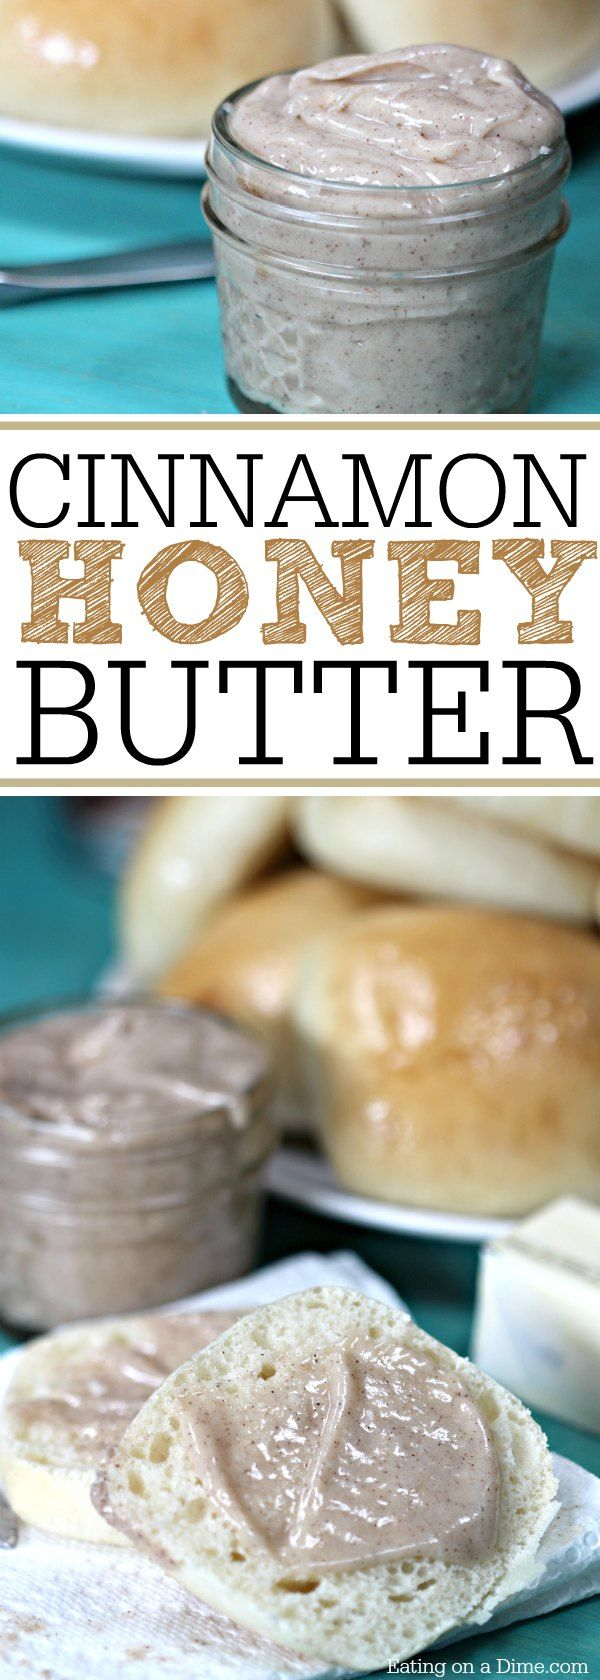 This Texas Roadhouse cinnamon butter recipe is easy to make. With just 4 ingredients you can make this easy cinnamon honey butter recipe in minutes! Try this Texas Roadhouse Cinnamon butter recipe today!